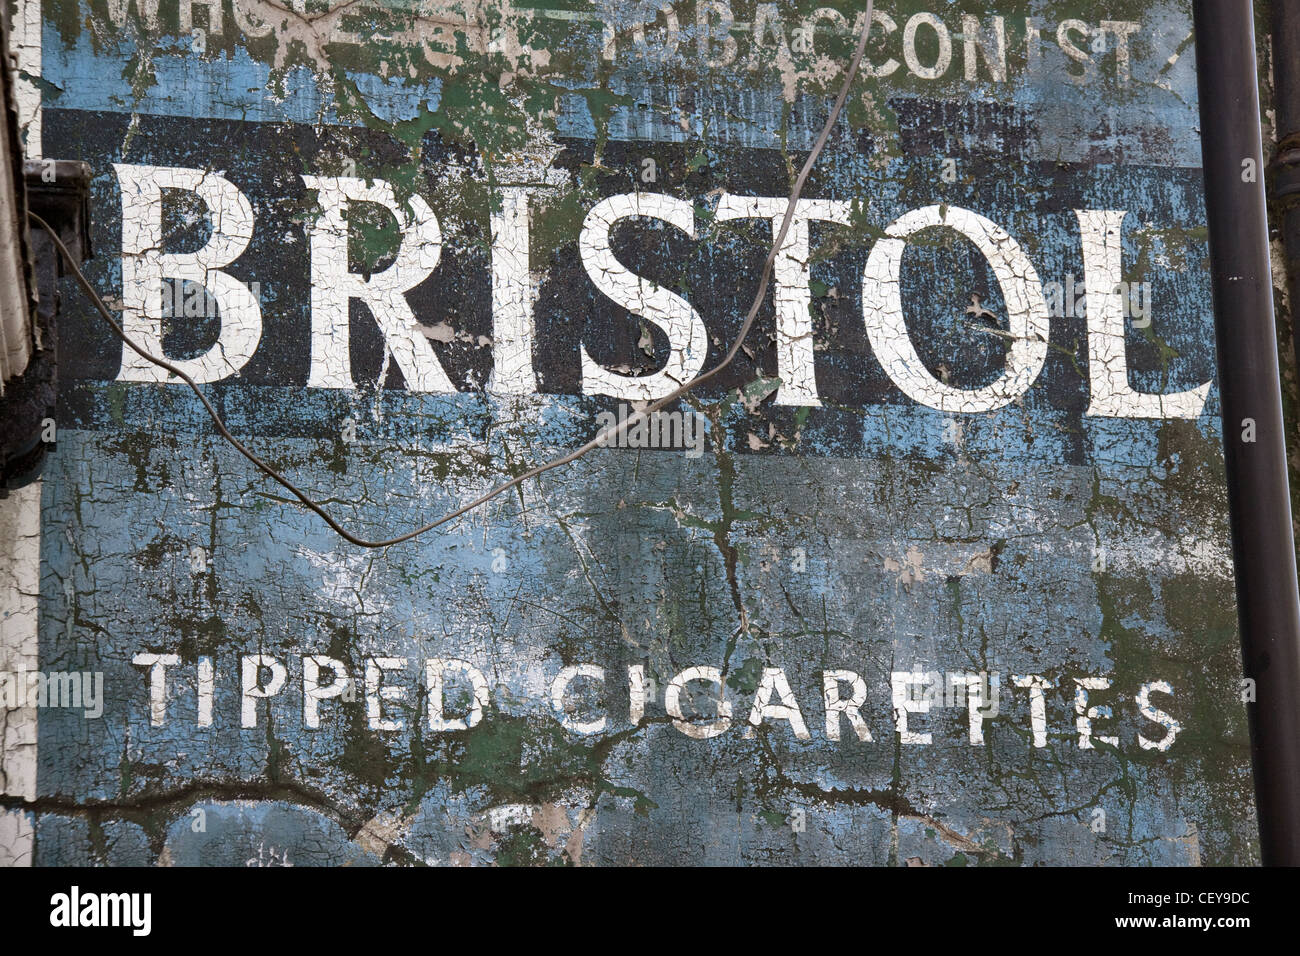 Bristol,Tipped,Cigarettes,wall,historic,advertisement,from,Witton,Street,Northwich,Cheshire,West,and,Chester,England,CW9,5QU,W.D.,&,H.O.,Wills,was,a,British,tobacco,importer,and,cigarette,manufacturer,formed,in,Bristol,England.,It,was,one,of,the,founding,companies,of,Imperial,Tobacco,CW95QU,historic history old,gotonysmith,Buy Pictures of,Buy Images Of